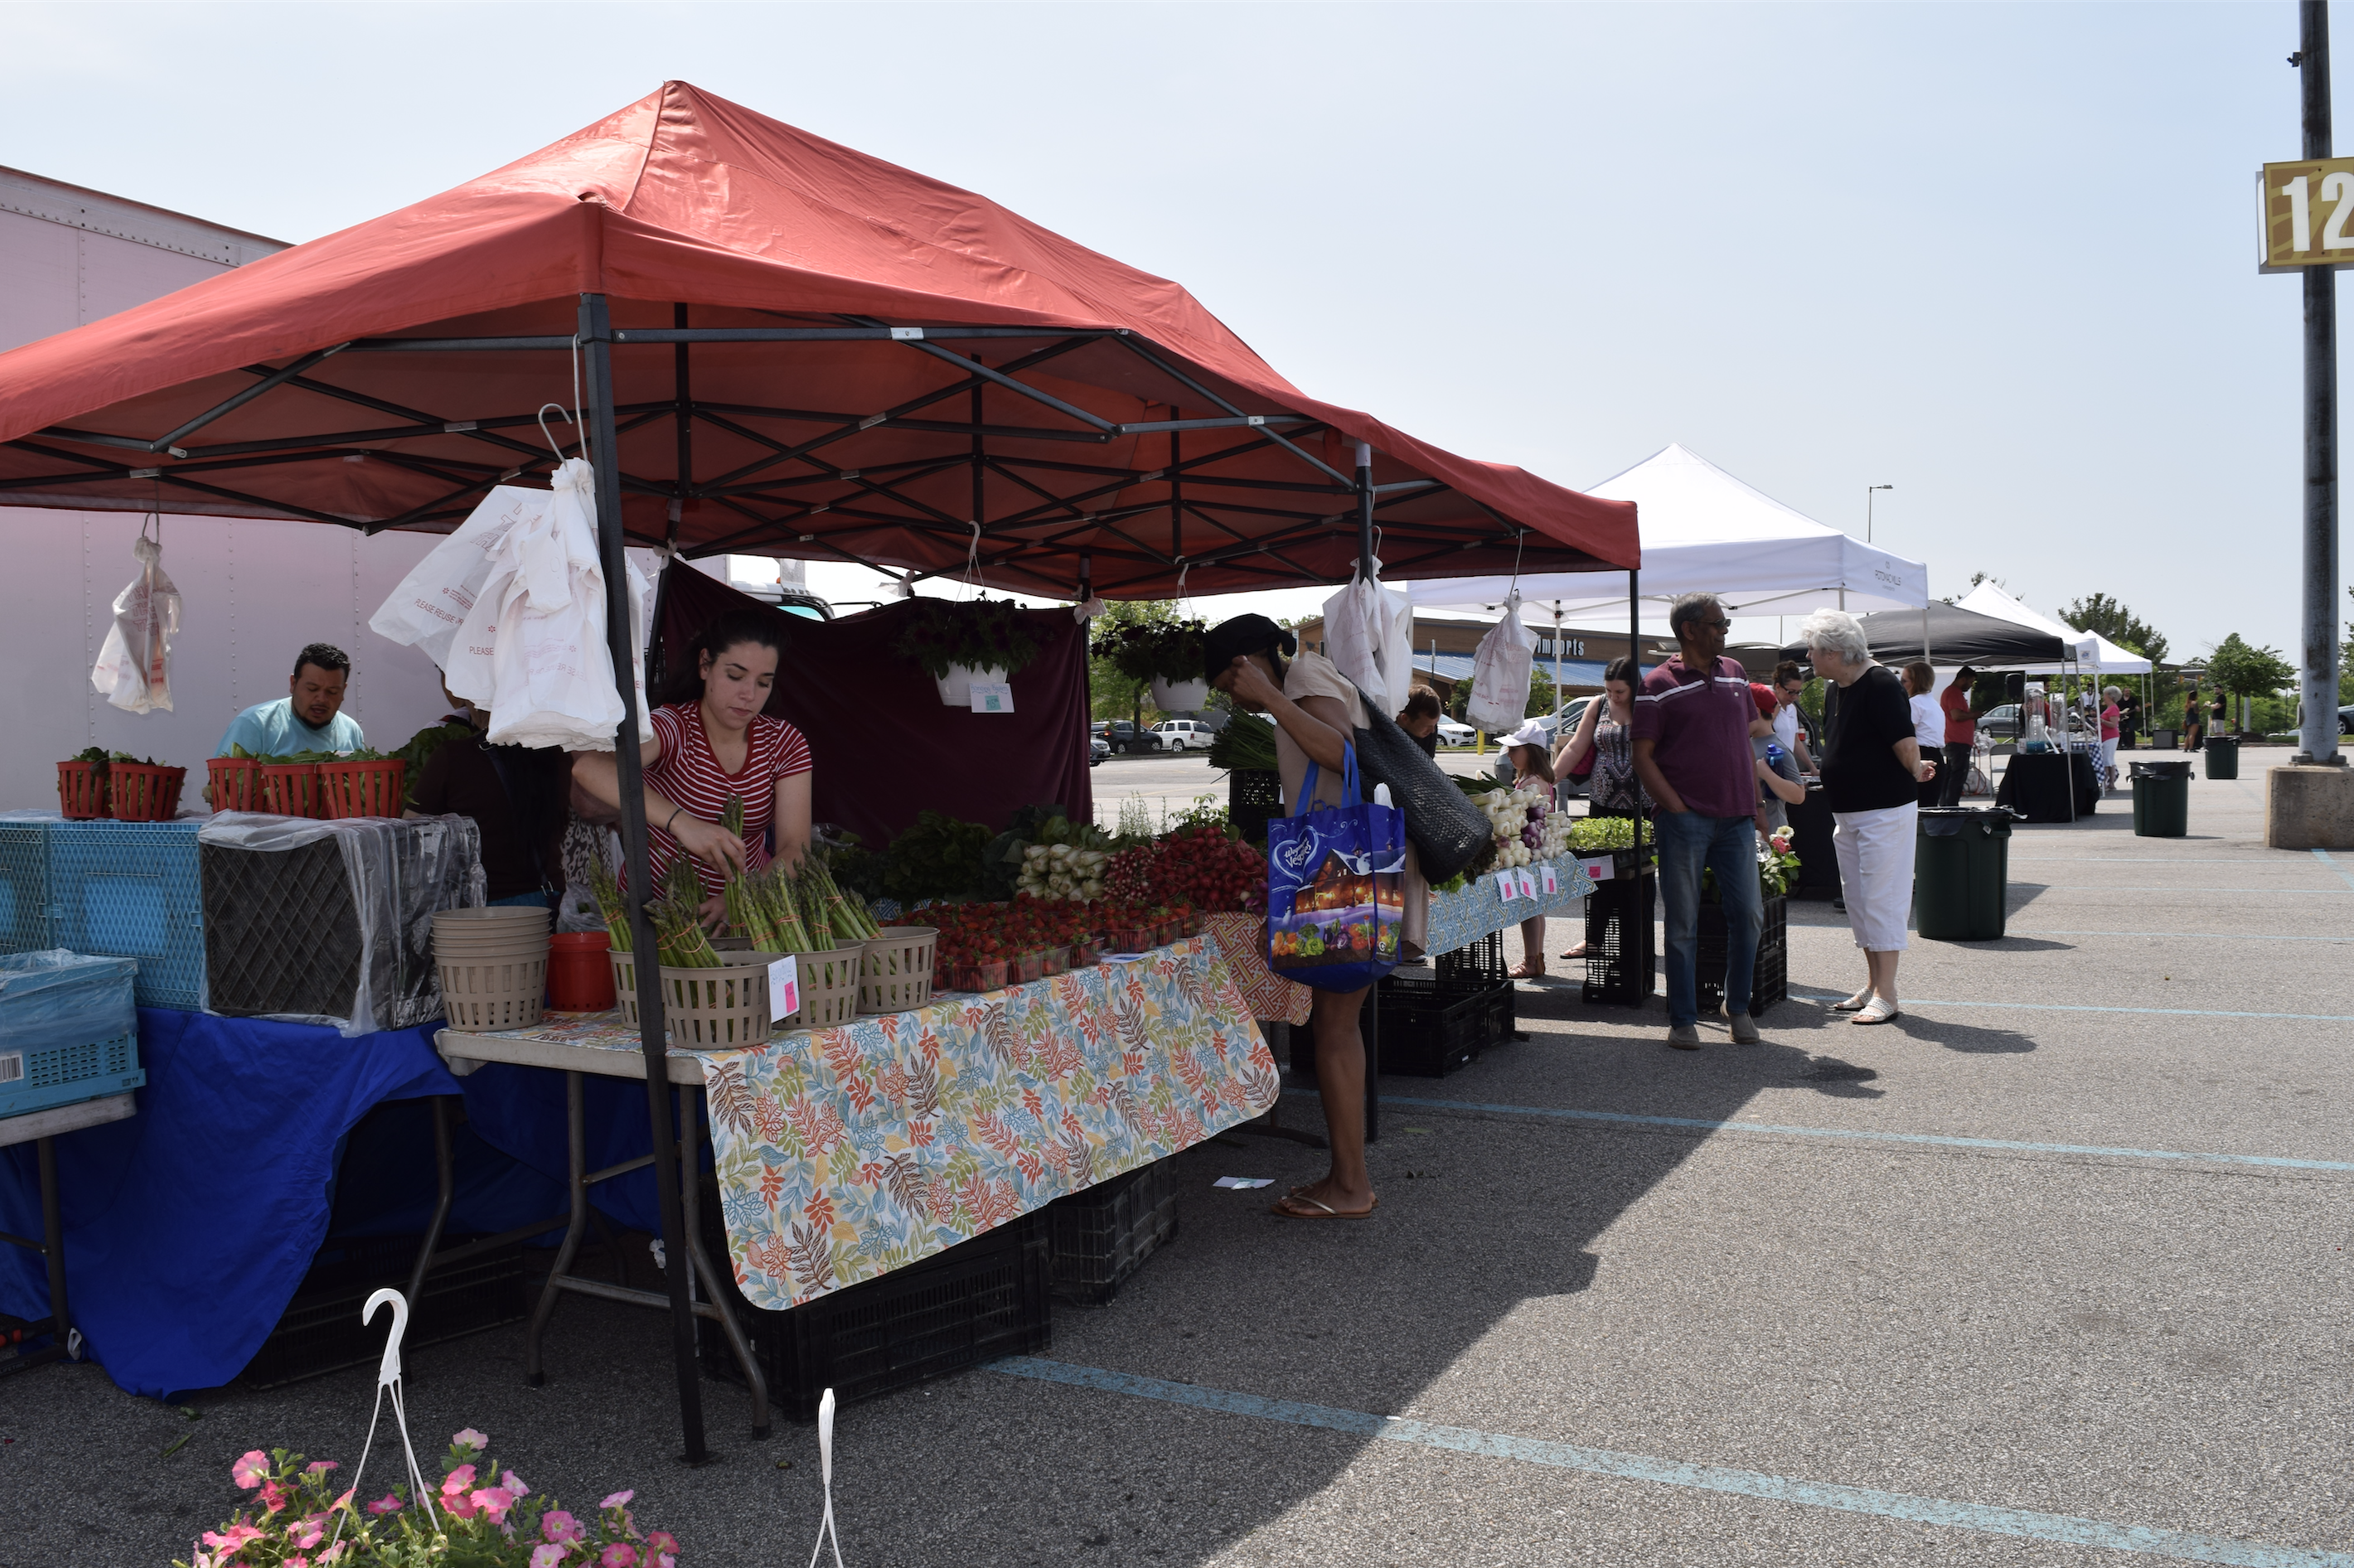 """The Market at Potomac Mills"" - an outdoor farmers market in Woodbridge, Virginia"